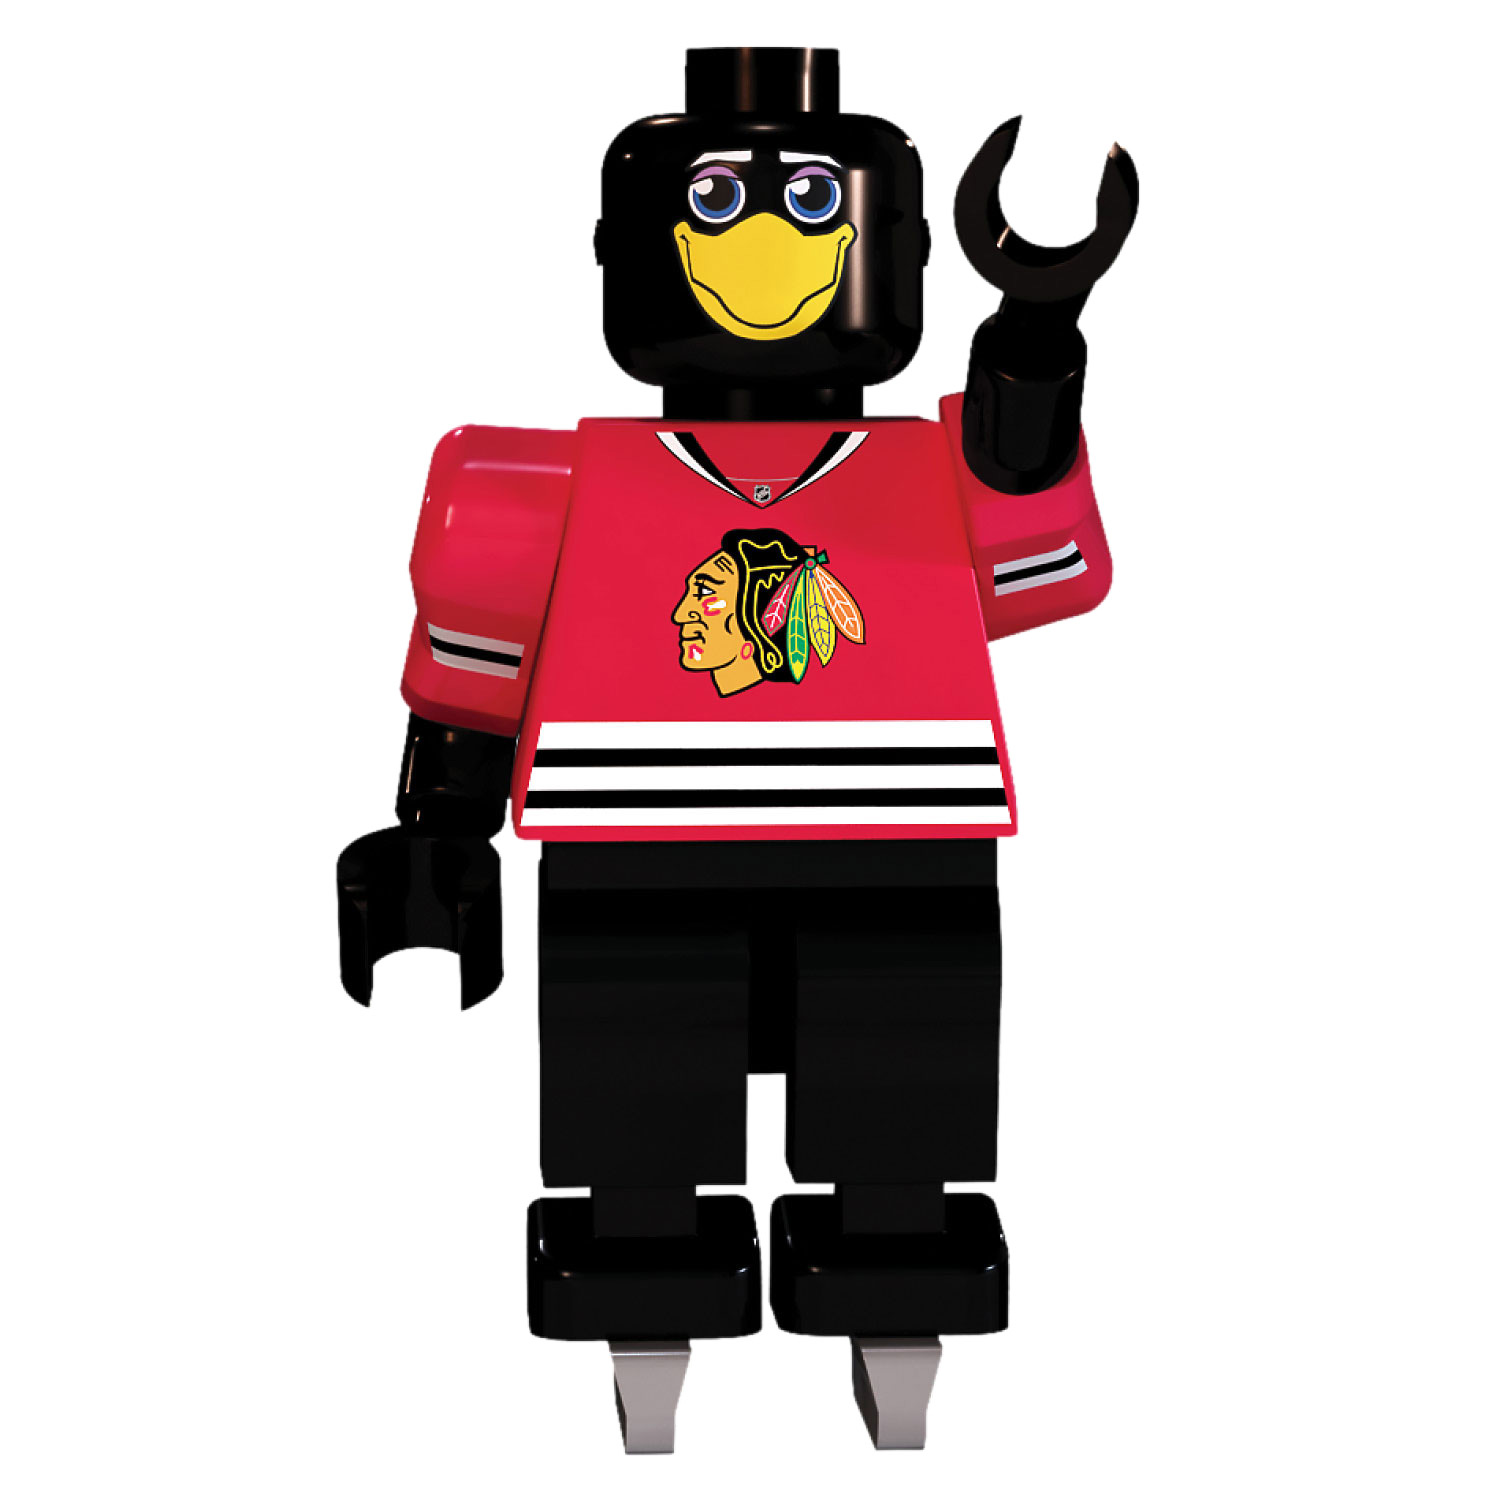 Chicago Blackhawks Mascot OYO Sports Player Minifigure - No Size